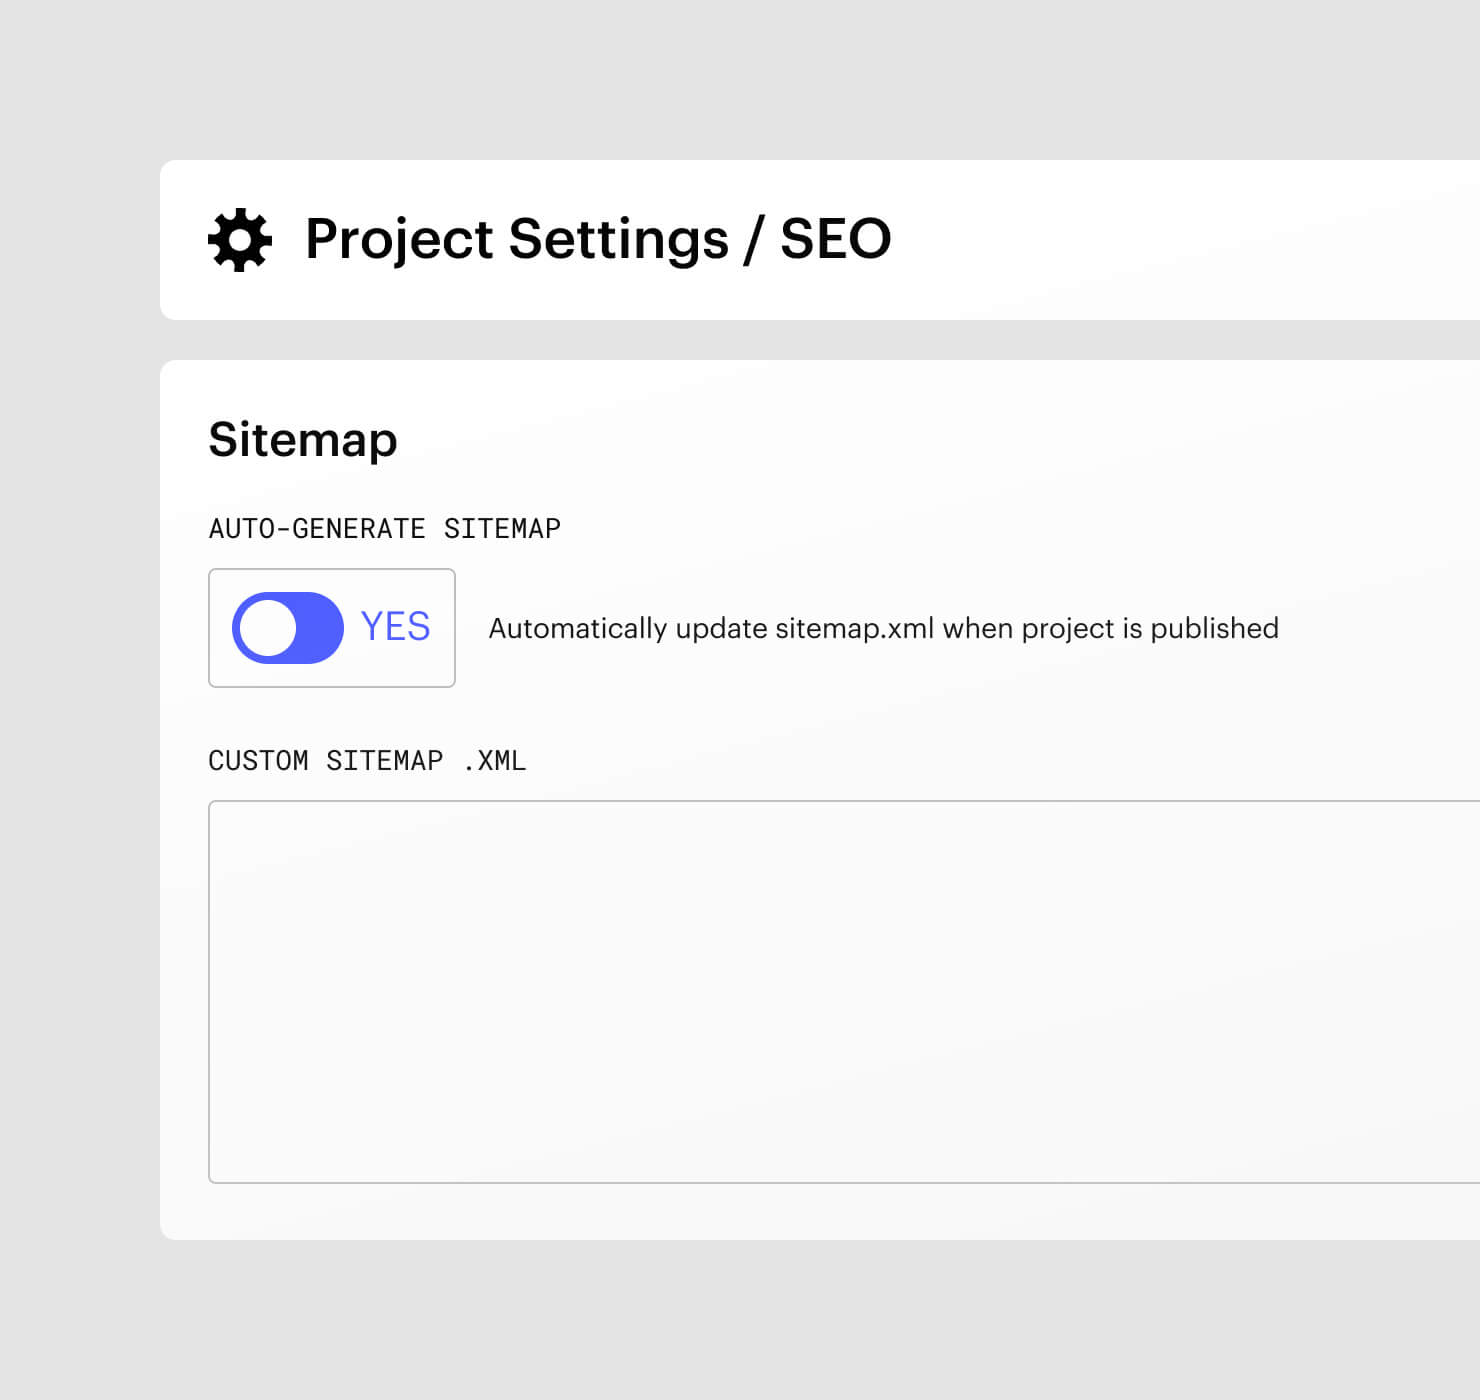 Project settings UI for sitemaps